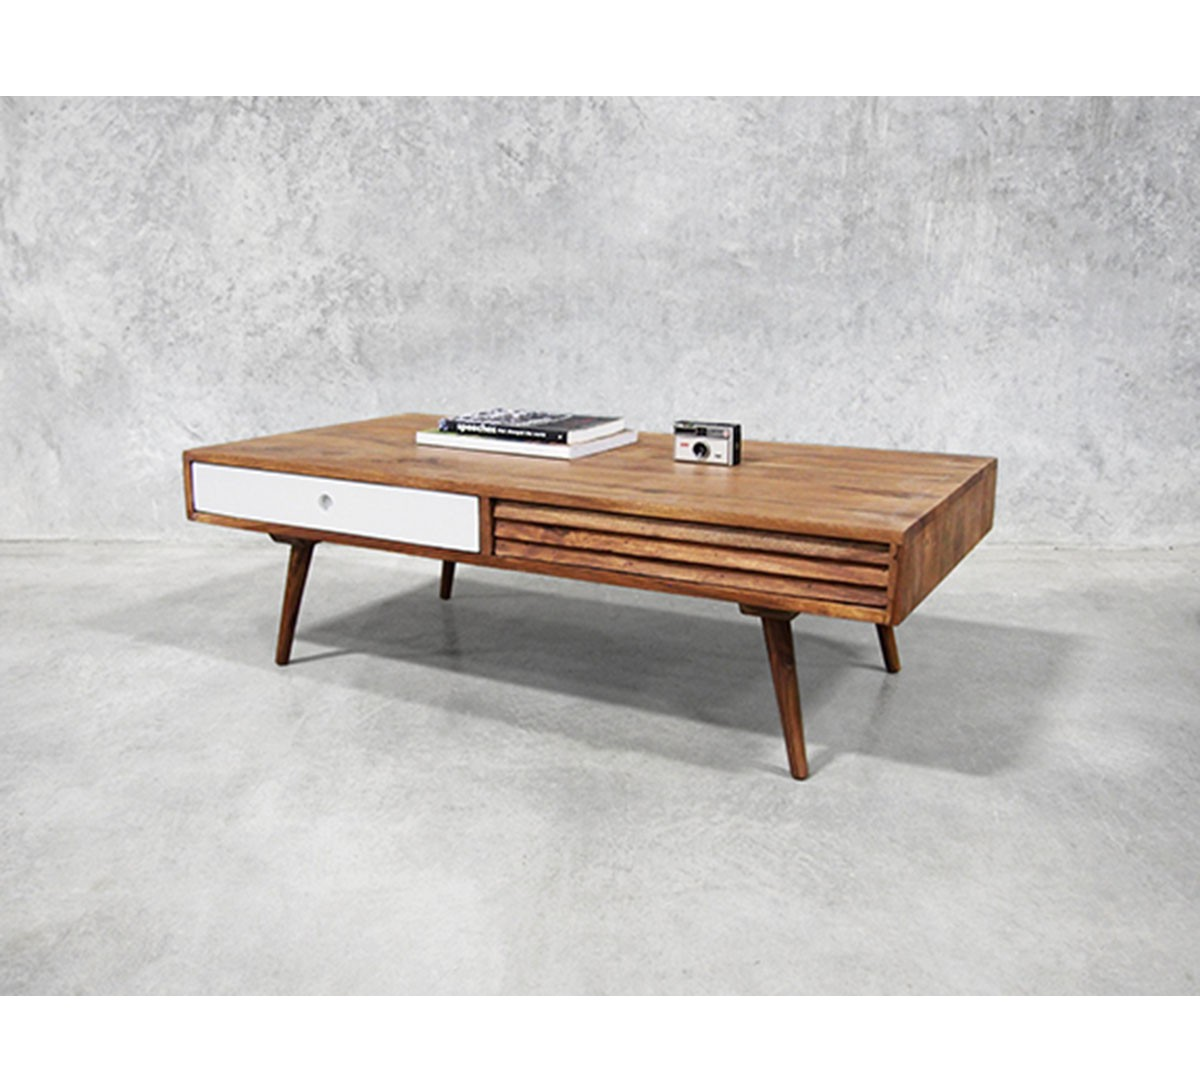 Table Basse Arrondie Table Basse Simple Table Basse Formes Arrondies Watford